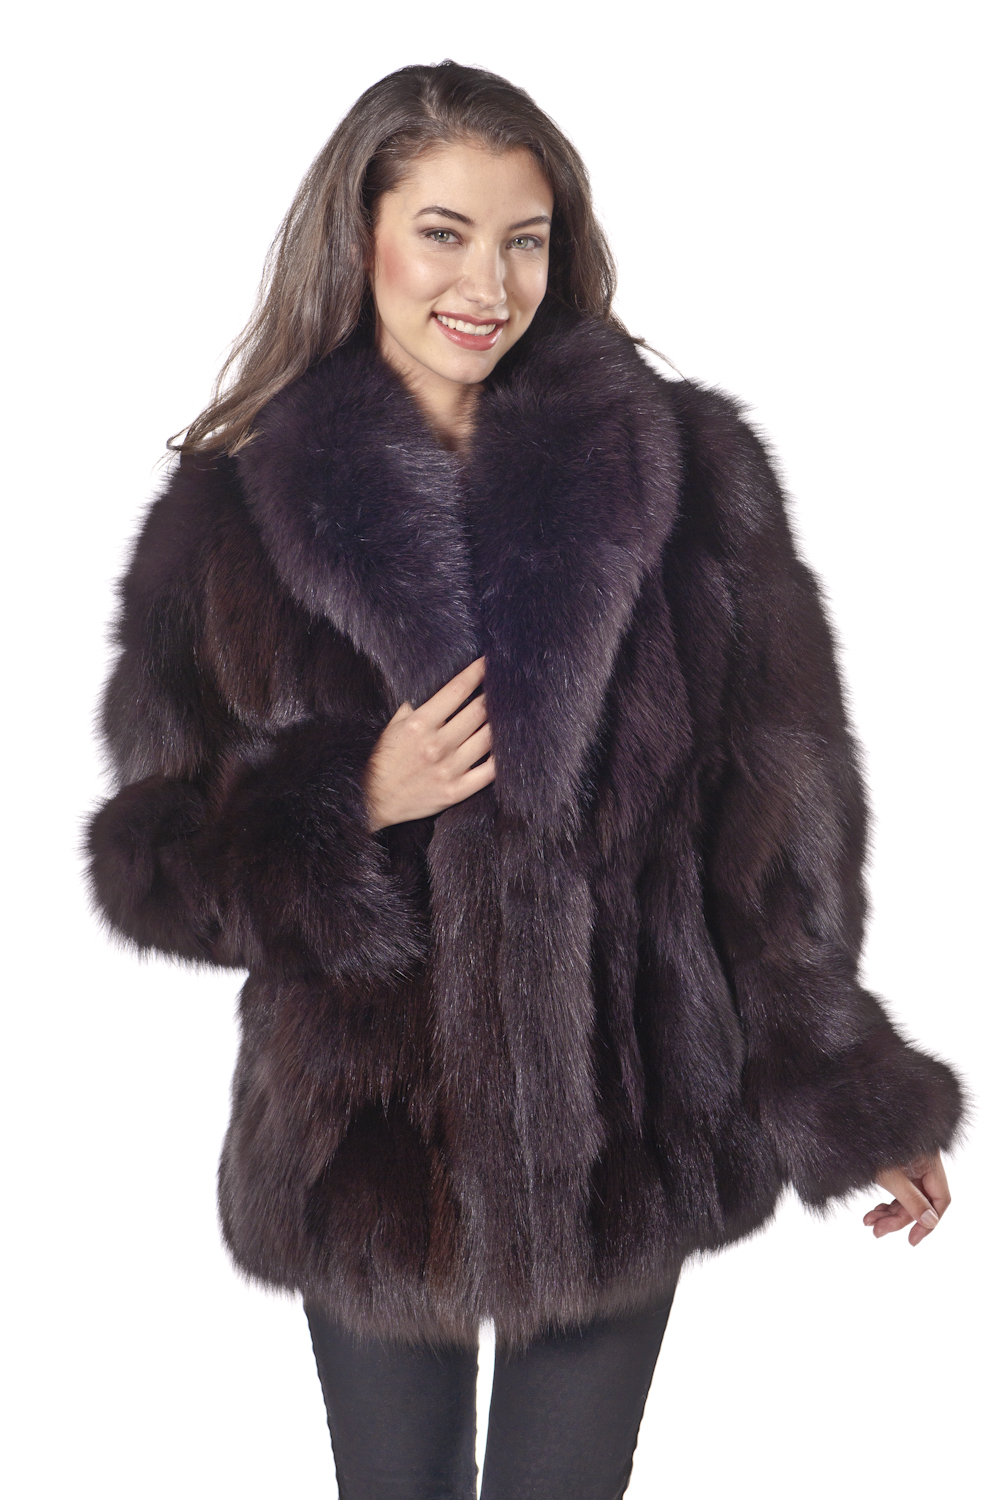 fox jakcet-real fox fur jacket-fox trim jacket-brown shawl collar-plus size